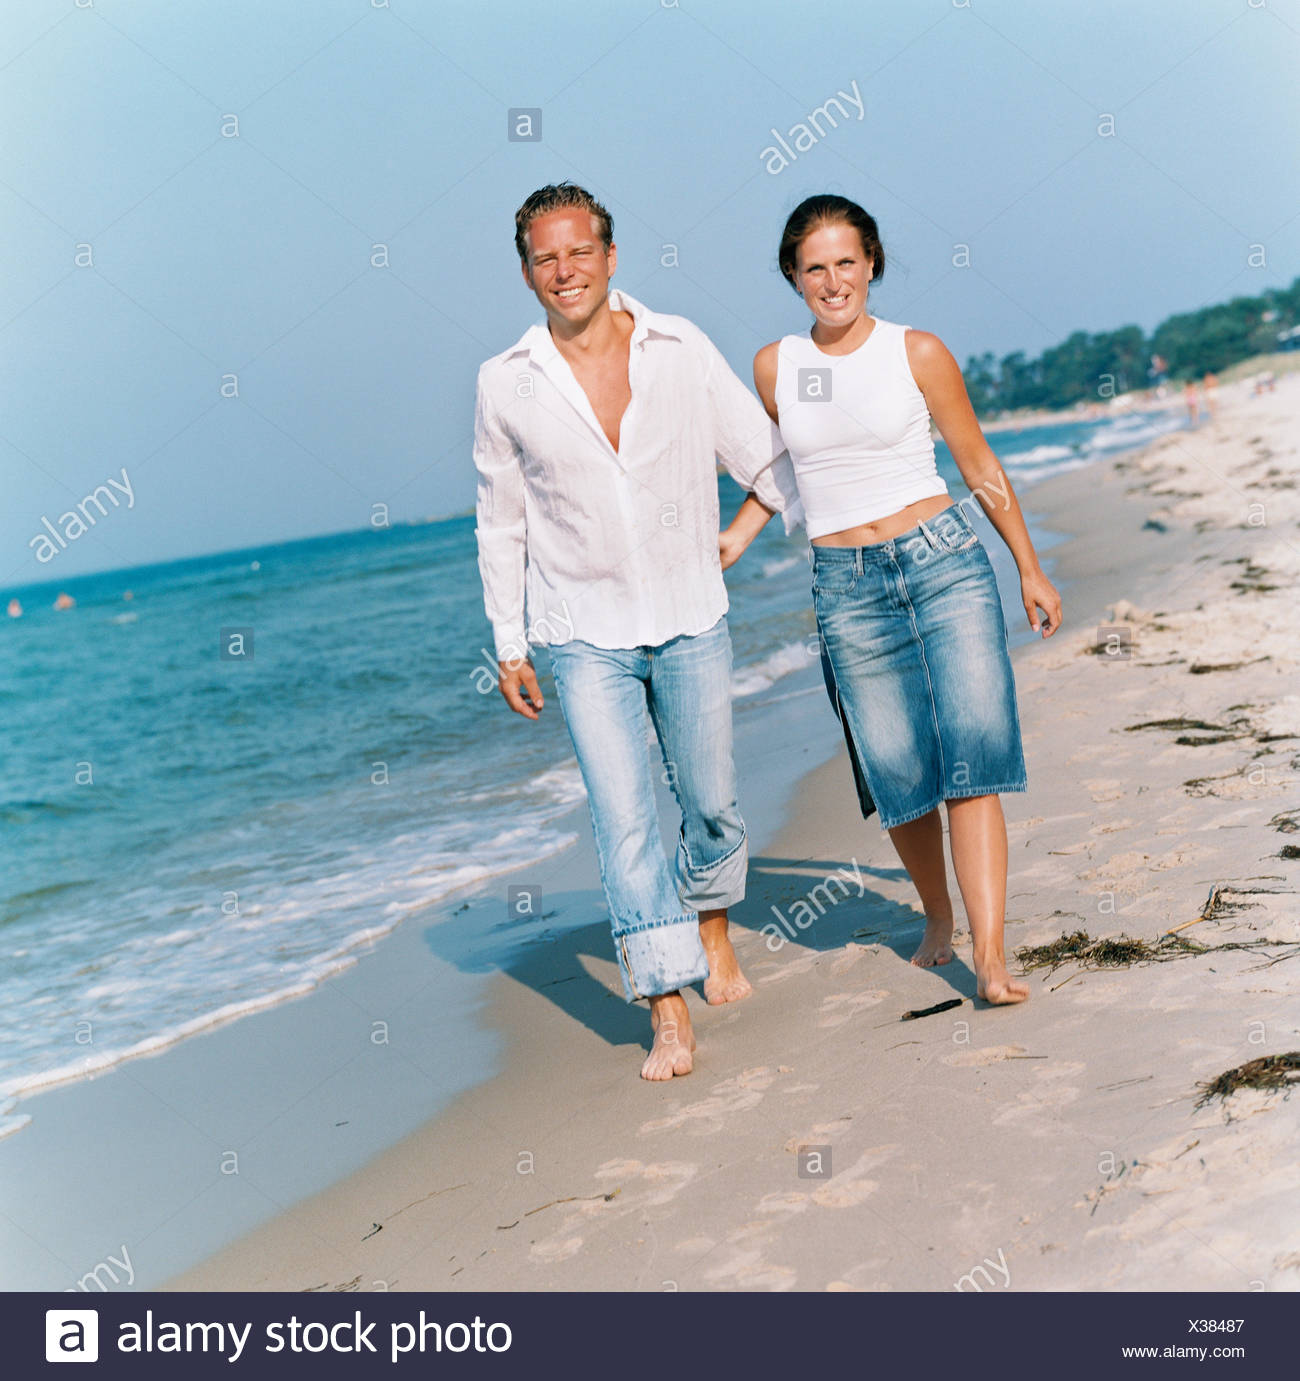 barefooter dating